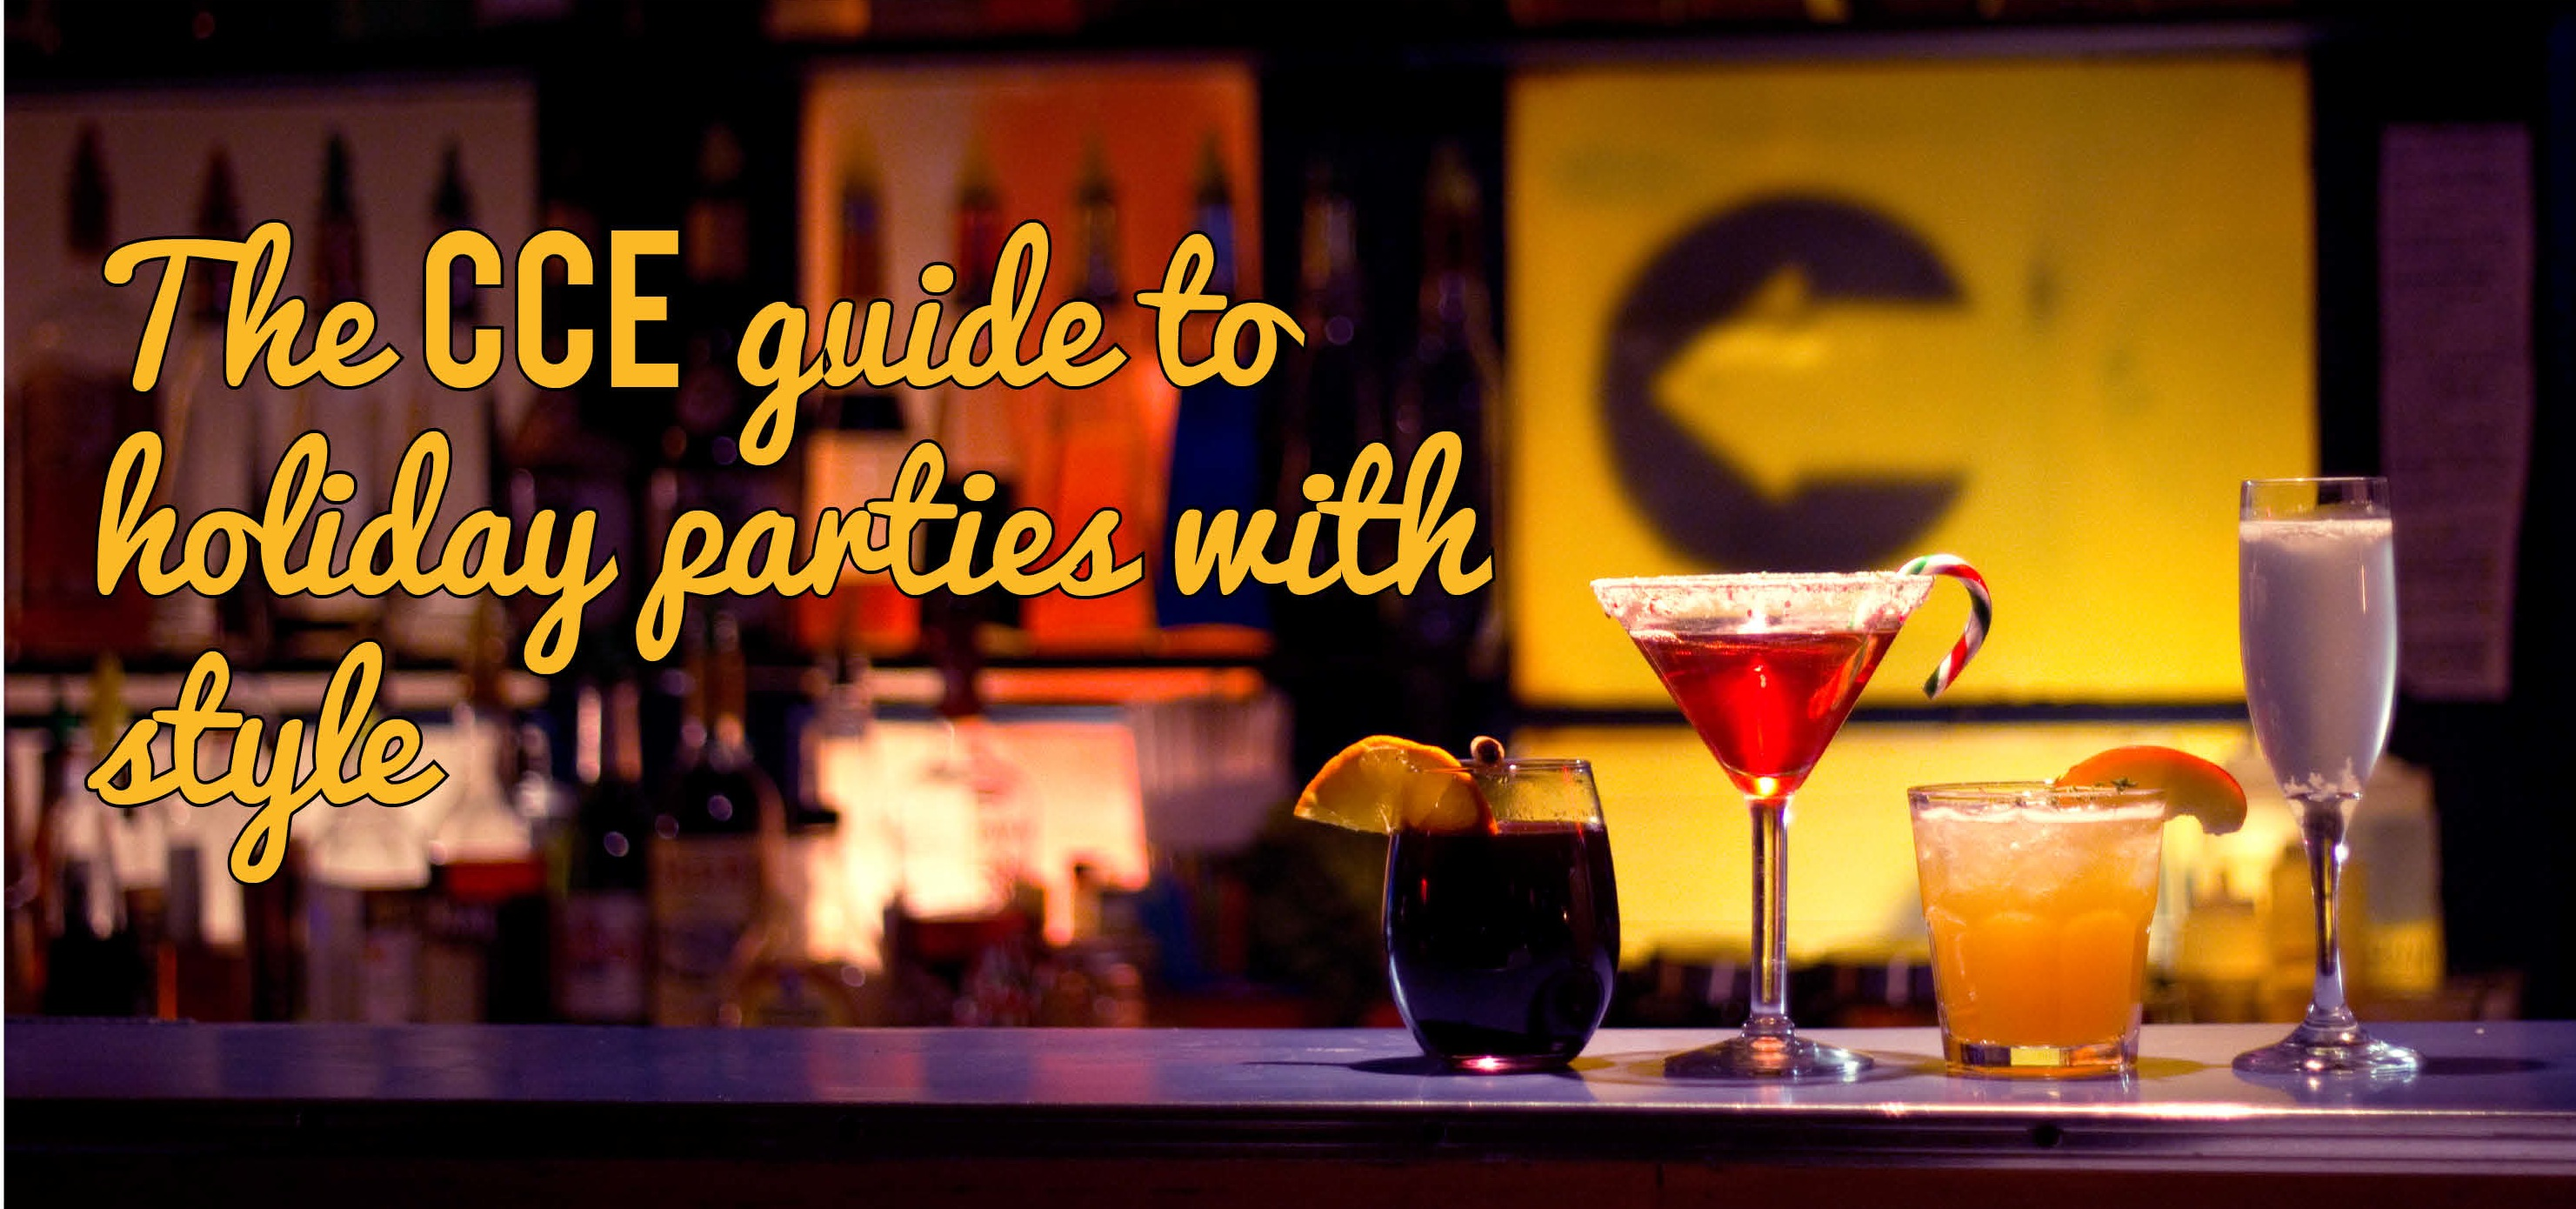 The CCE guide to holiday parties with style